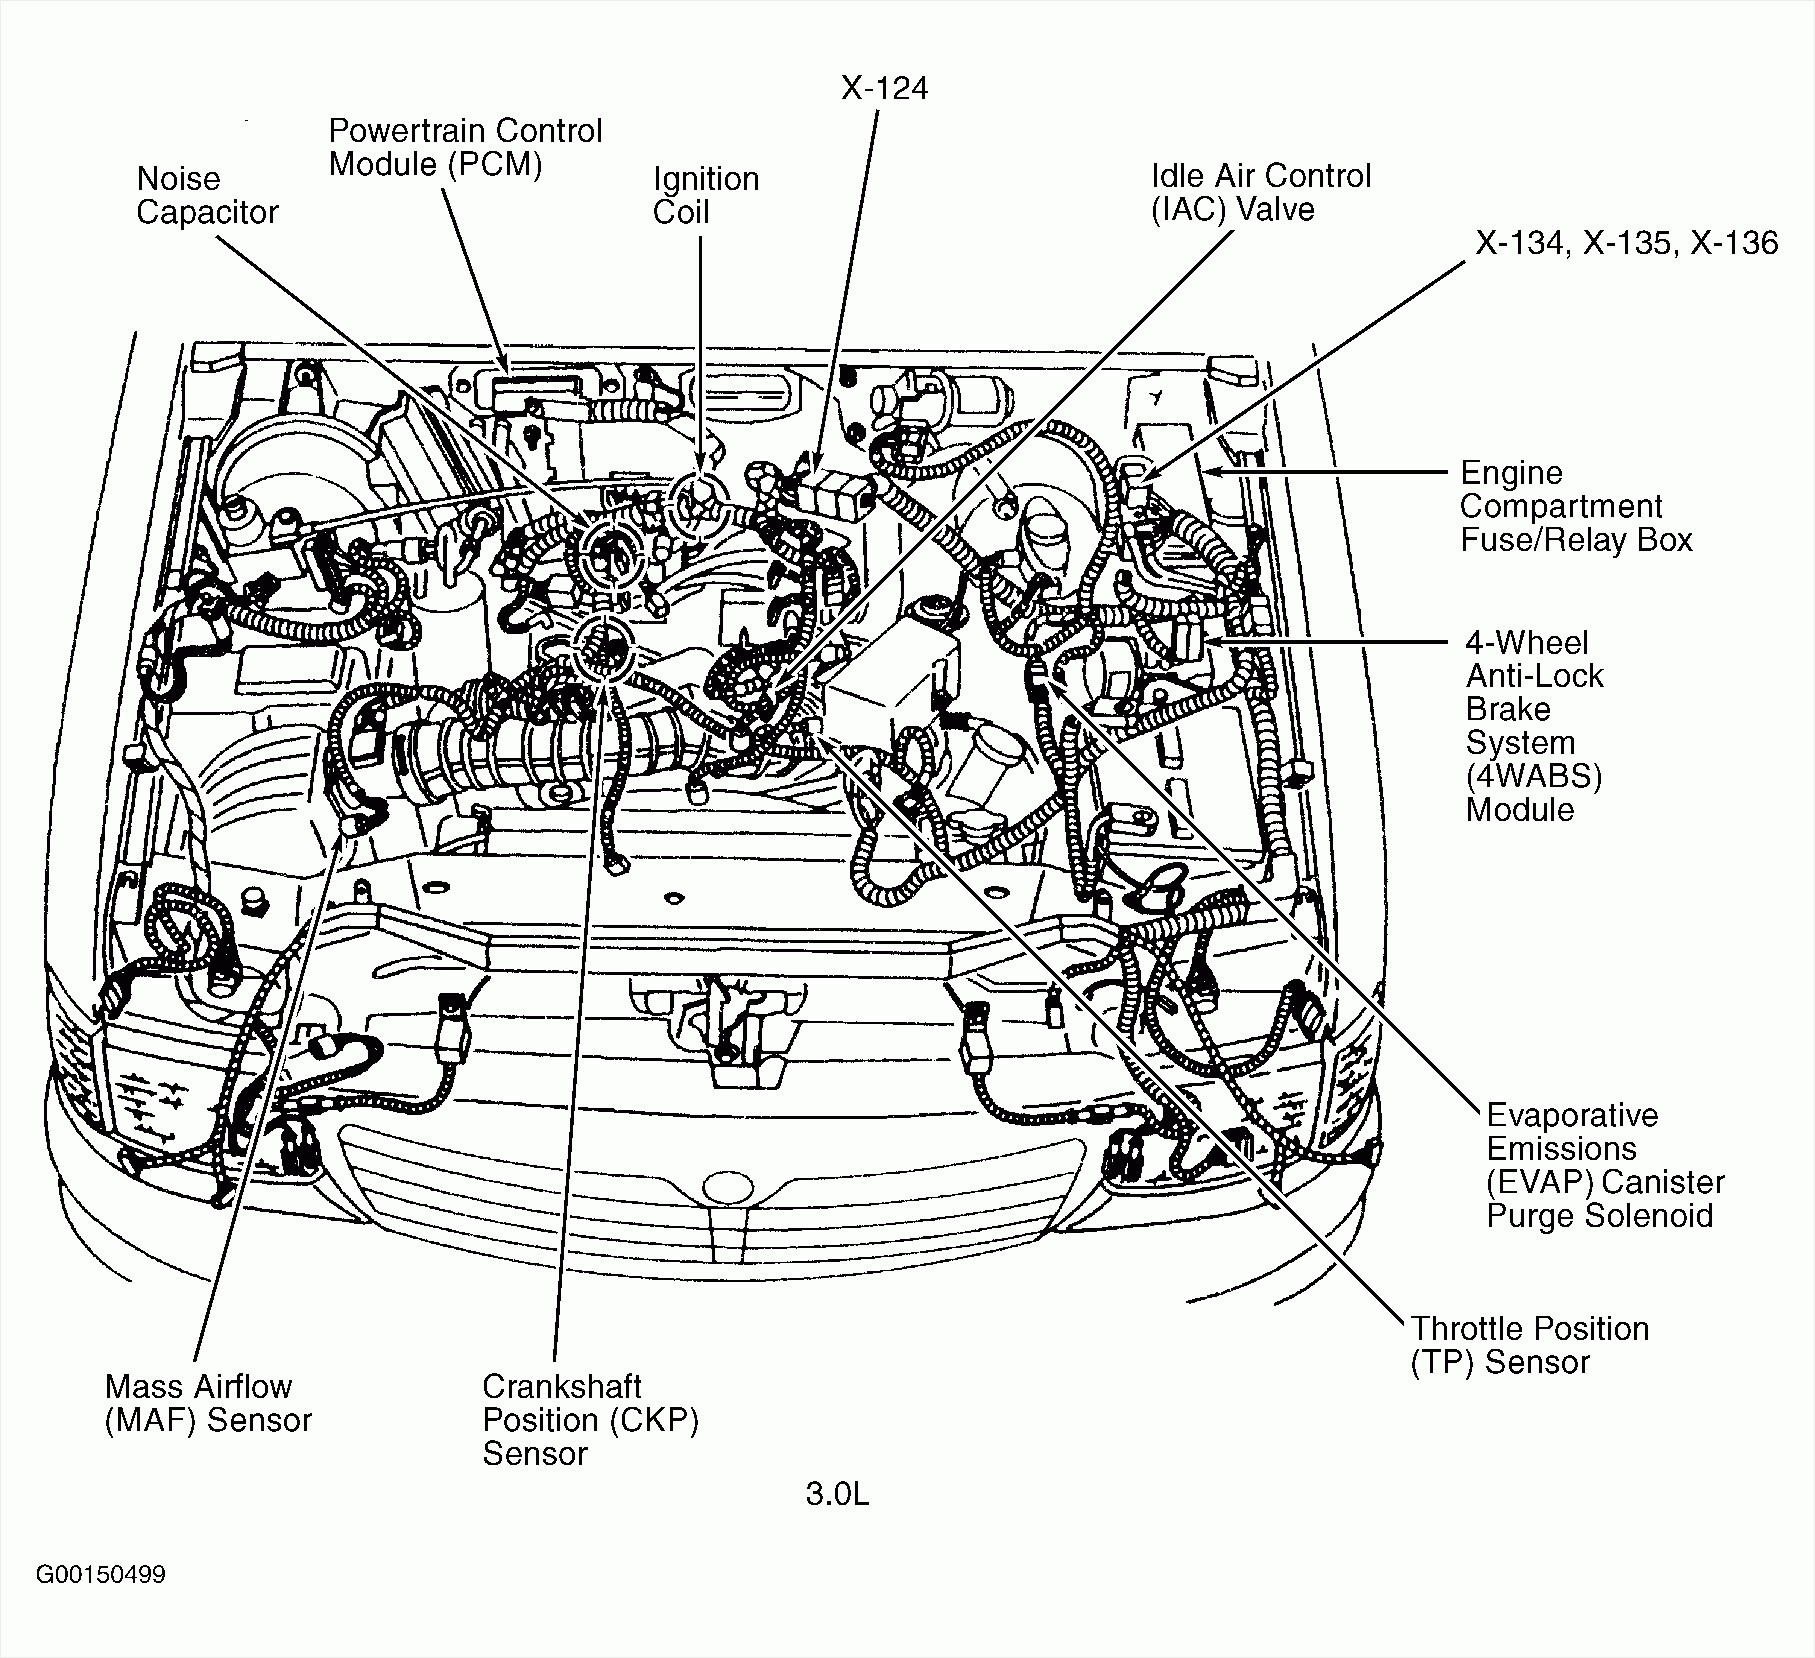 nissan 3 0 engine diagram improve wiring diagram u2022 rh finnoneillwriting co